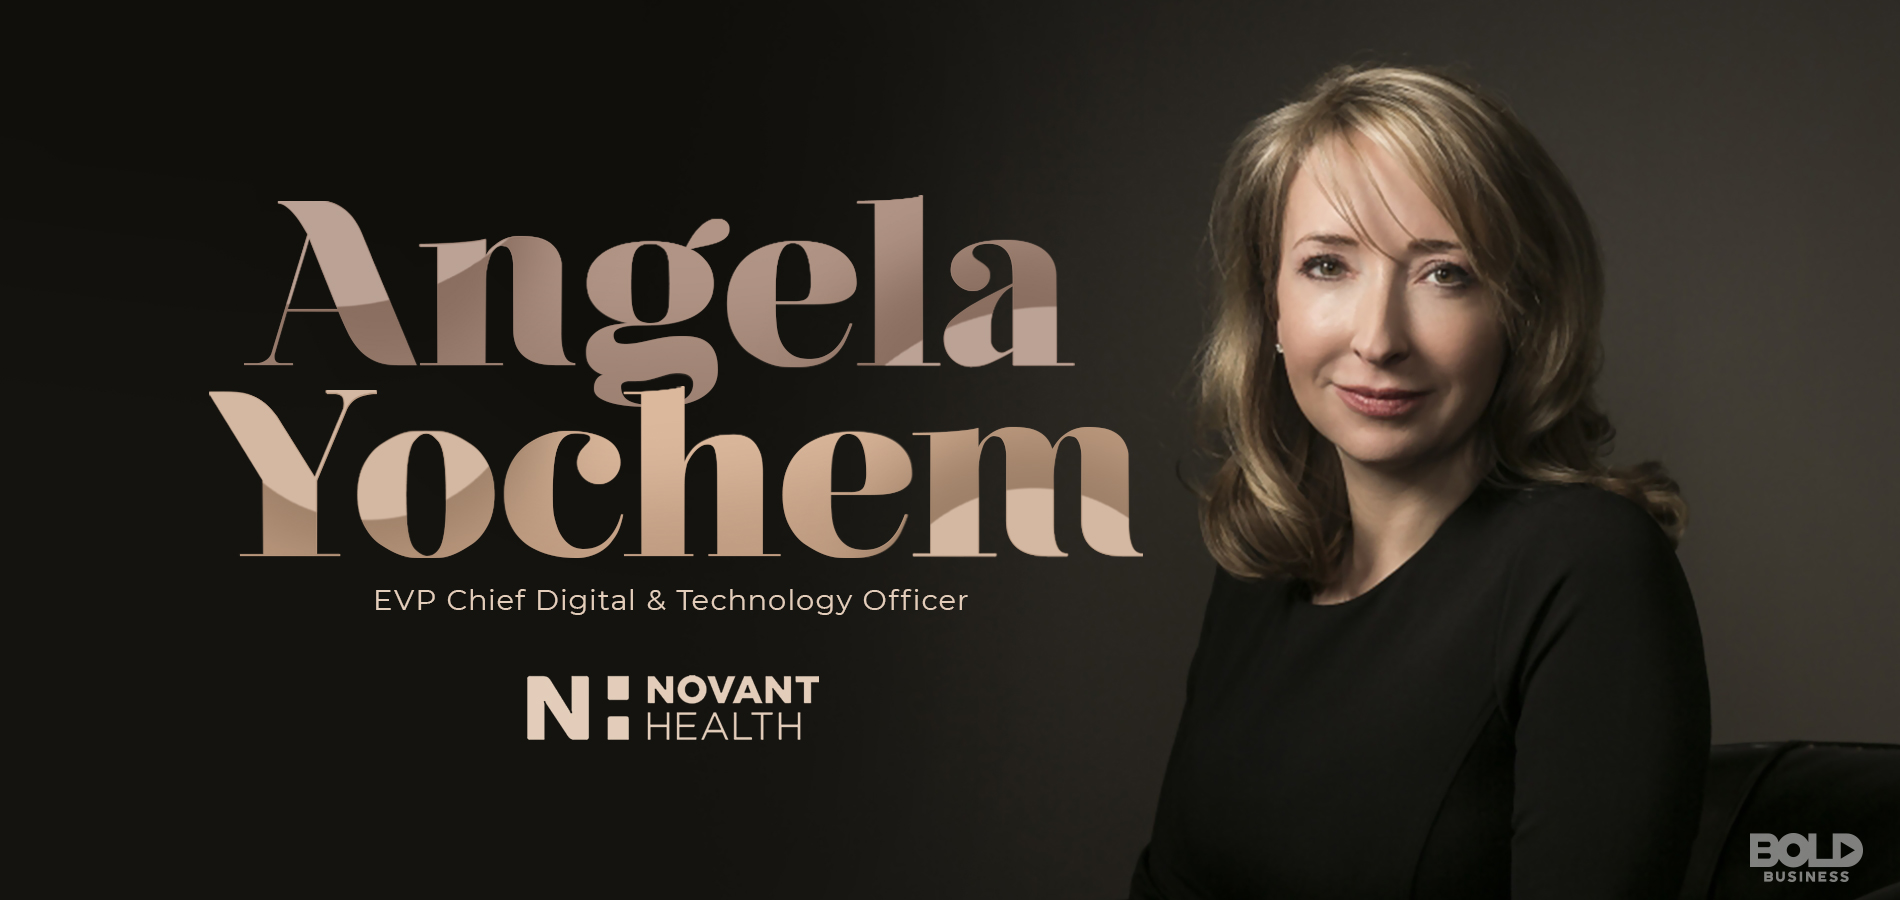 In this week's Bold Leader Spotlight, Angela Yochem of Novant Health drives the company's integration of digital innovation.